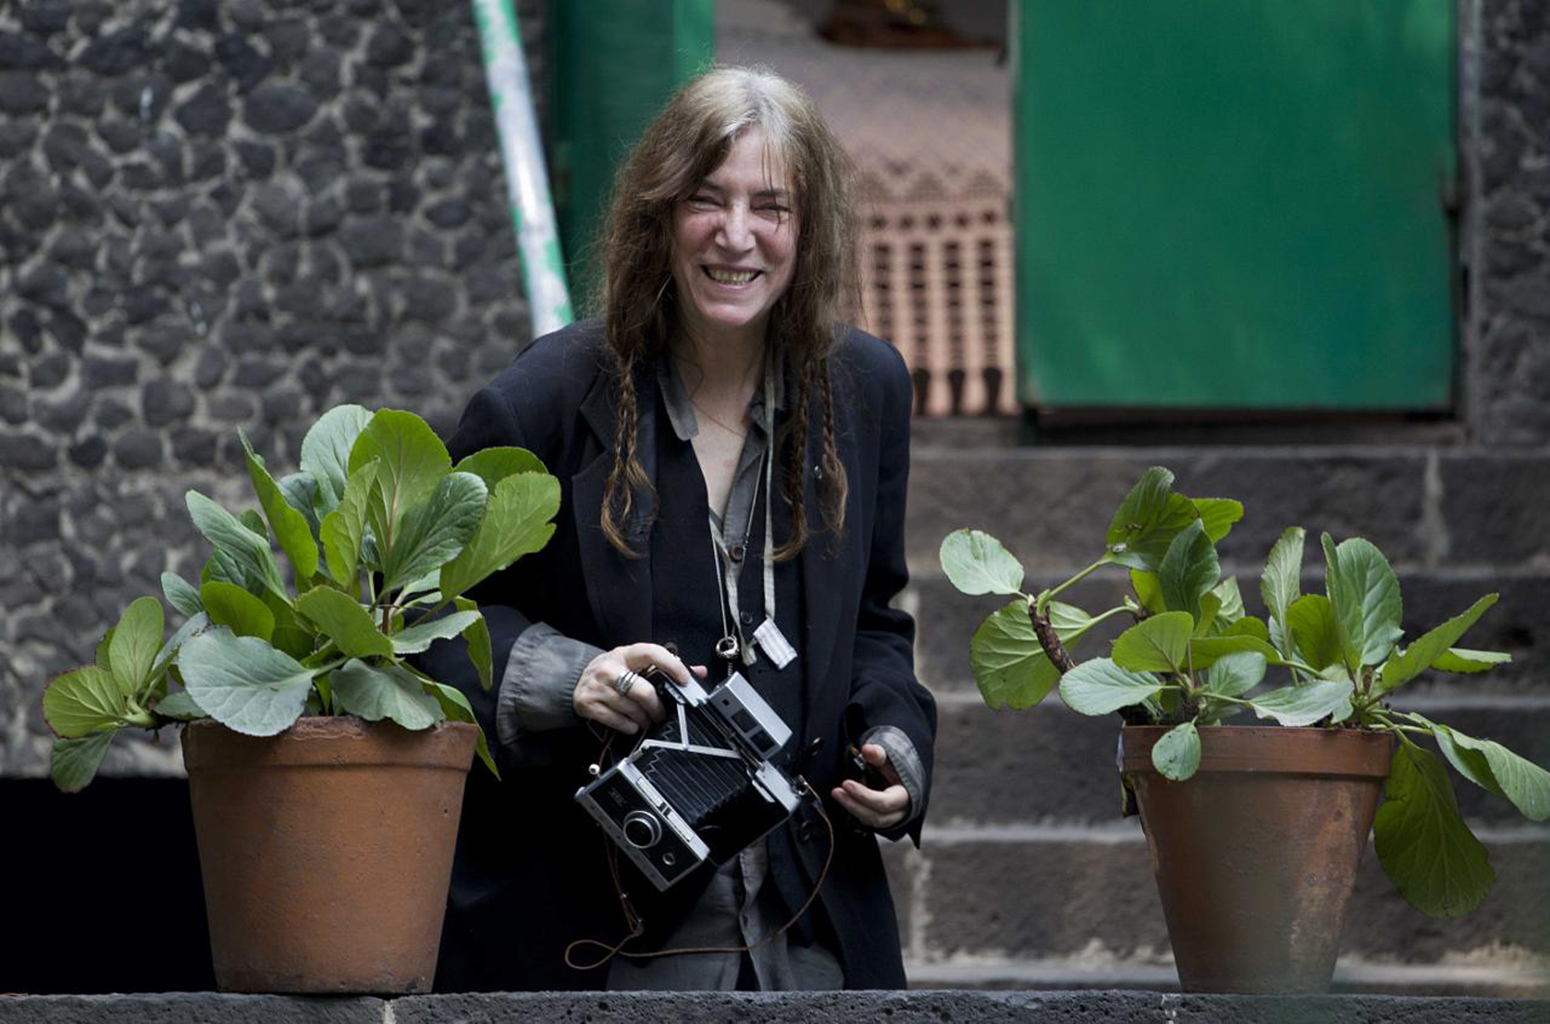 Singer Patti Smith with her Polaroid (Credit: Eduardo Verdugo)